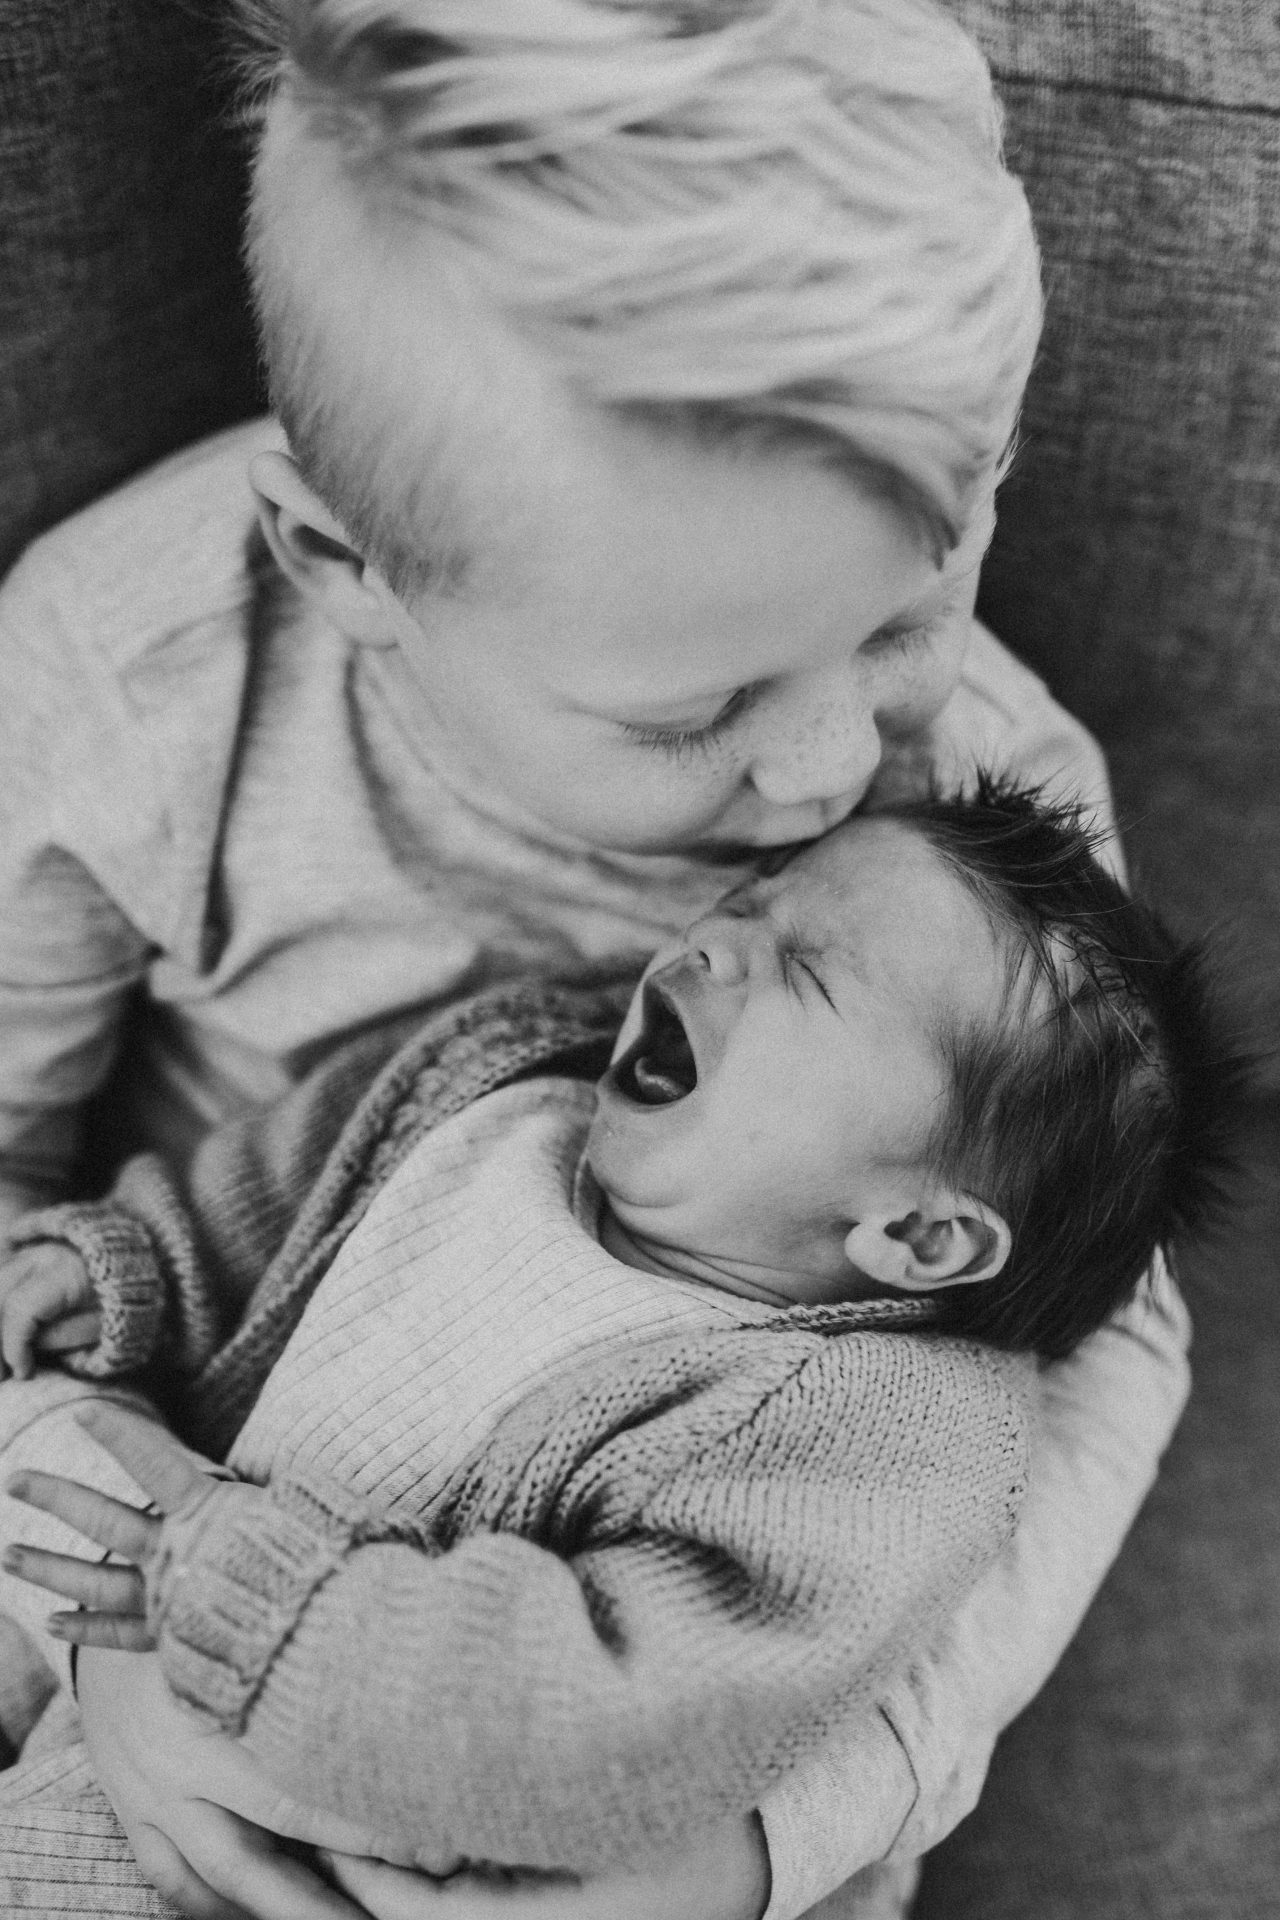 Young boy comforting his crying newborn brother